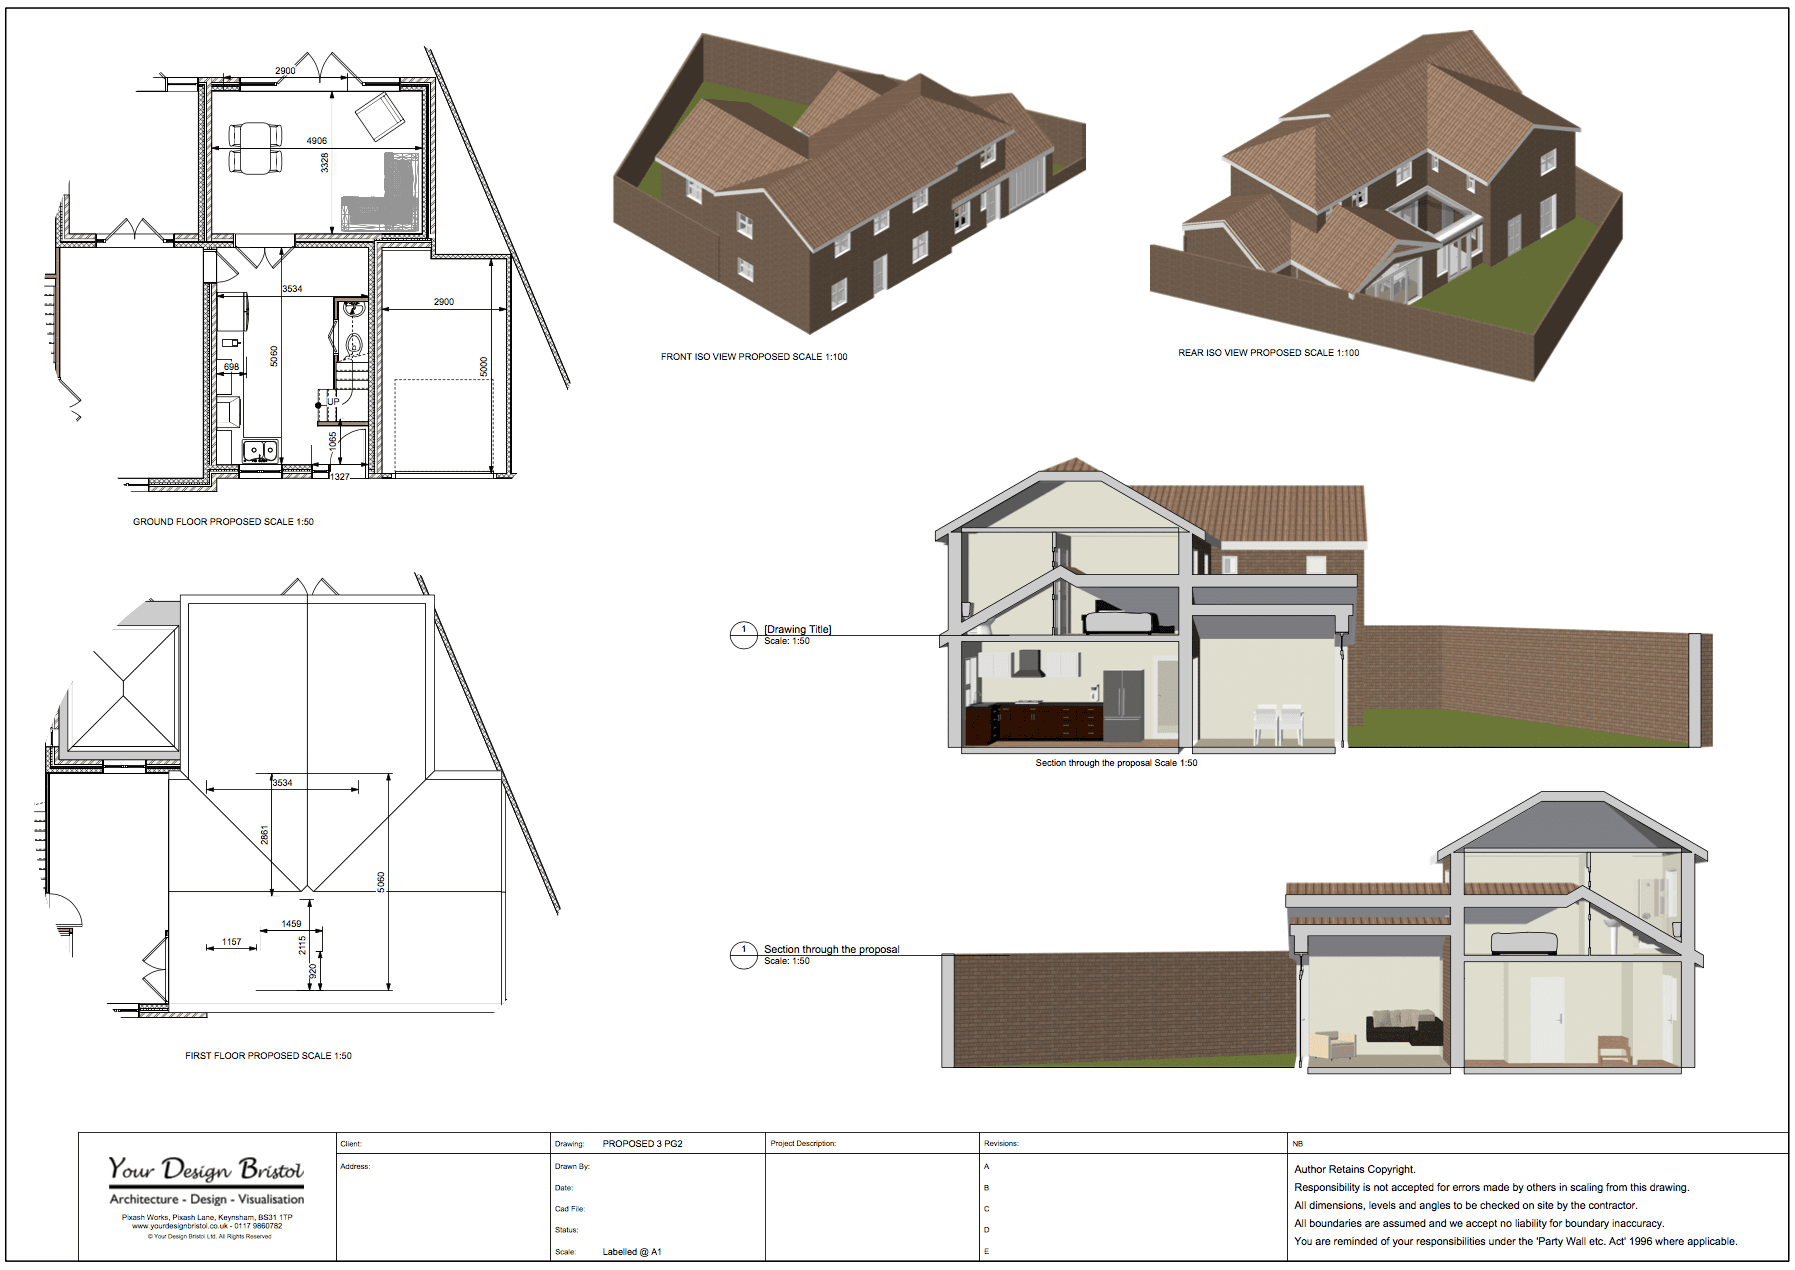 portfolio architectural design and visualisation work rear and garage extension